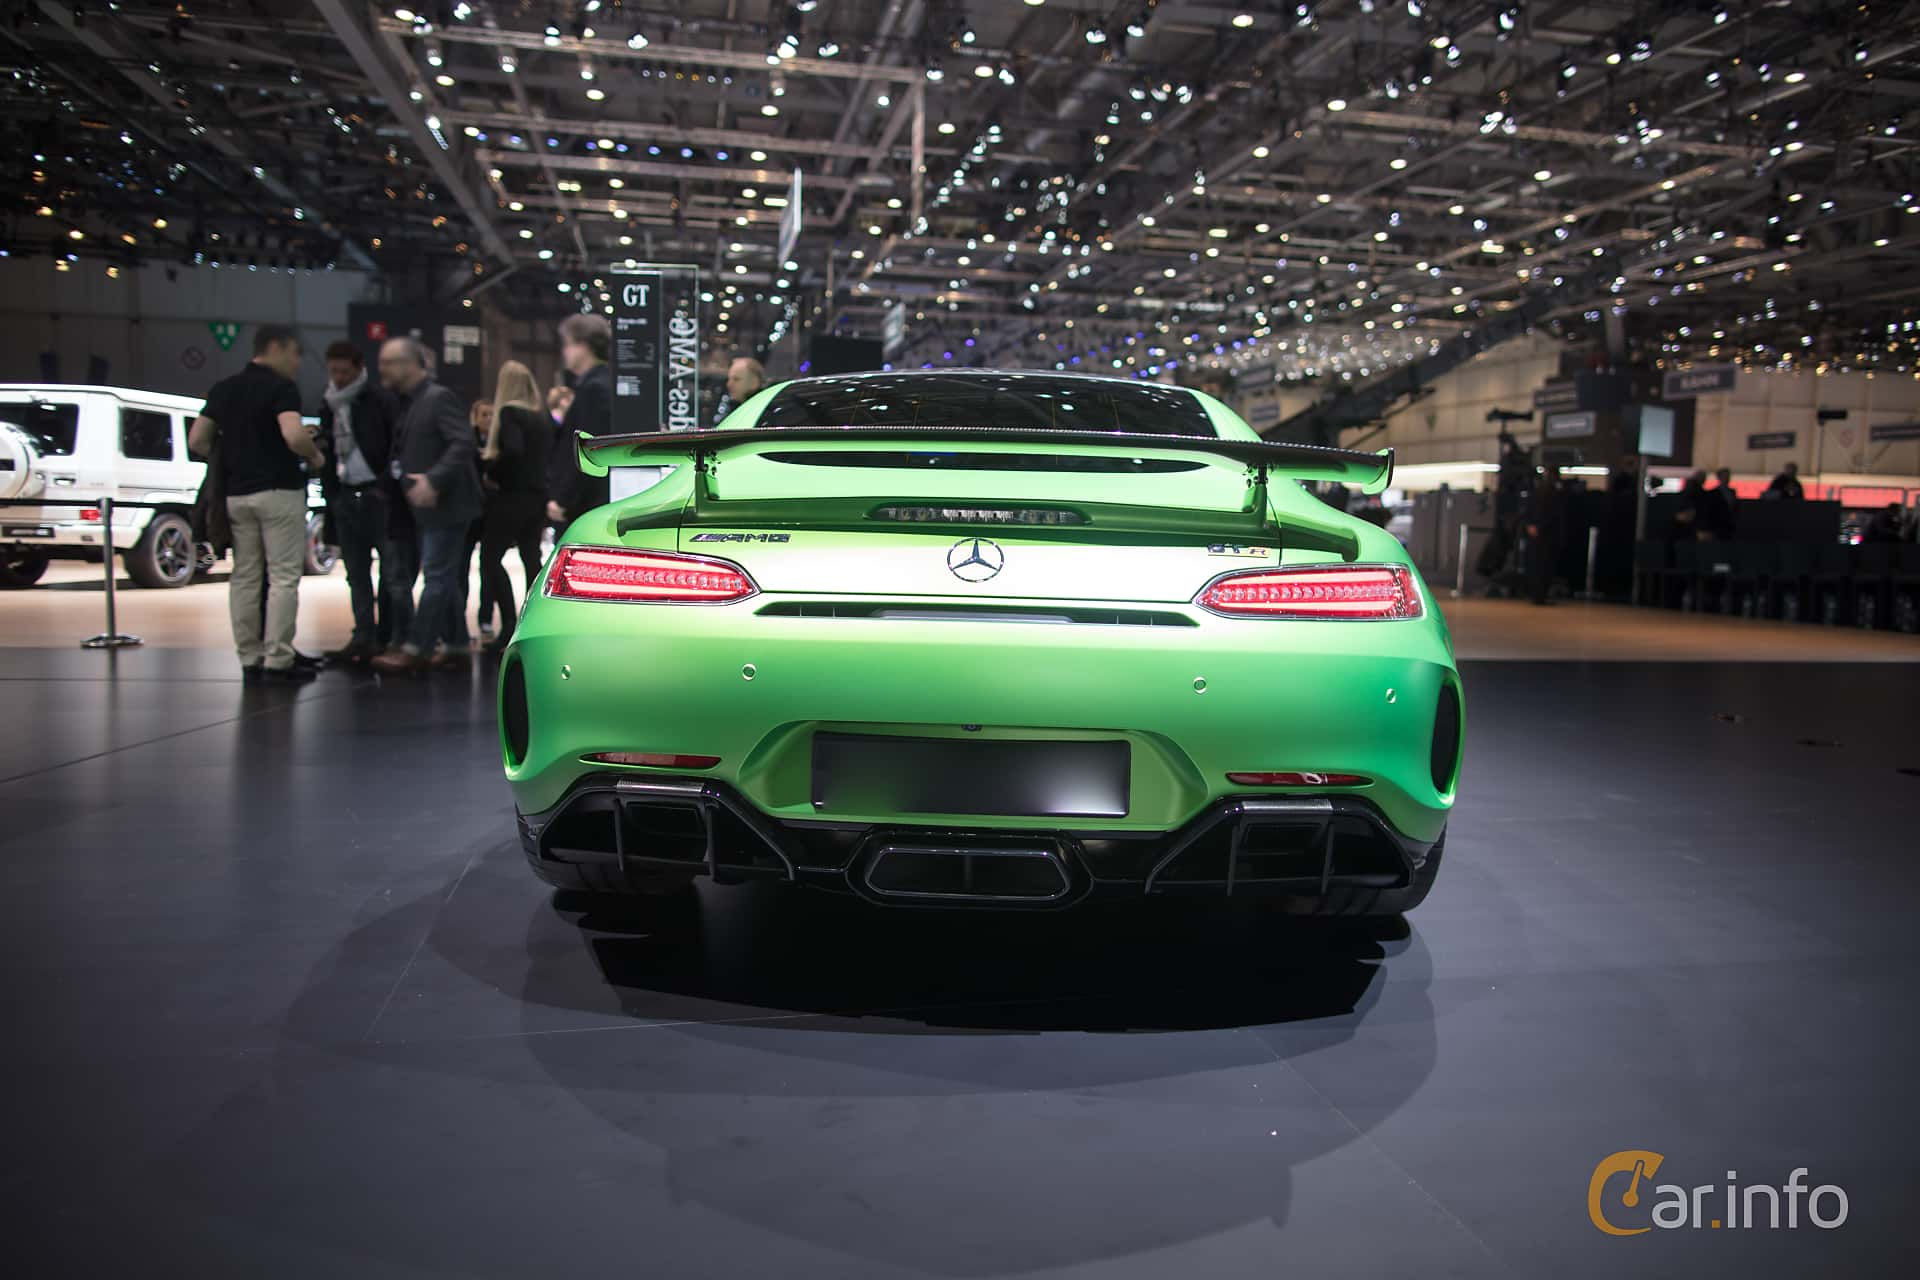 Mercedes-Benz AMG GT R  AMG Speedshift DCT, 585hp, 2017 at Geneva Motor Show 2017